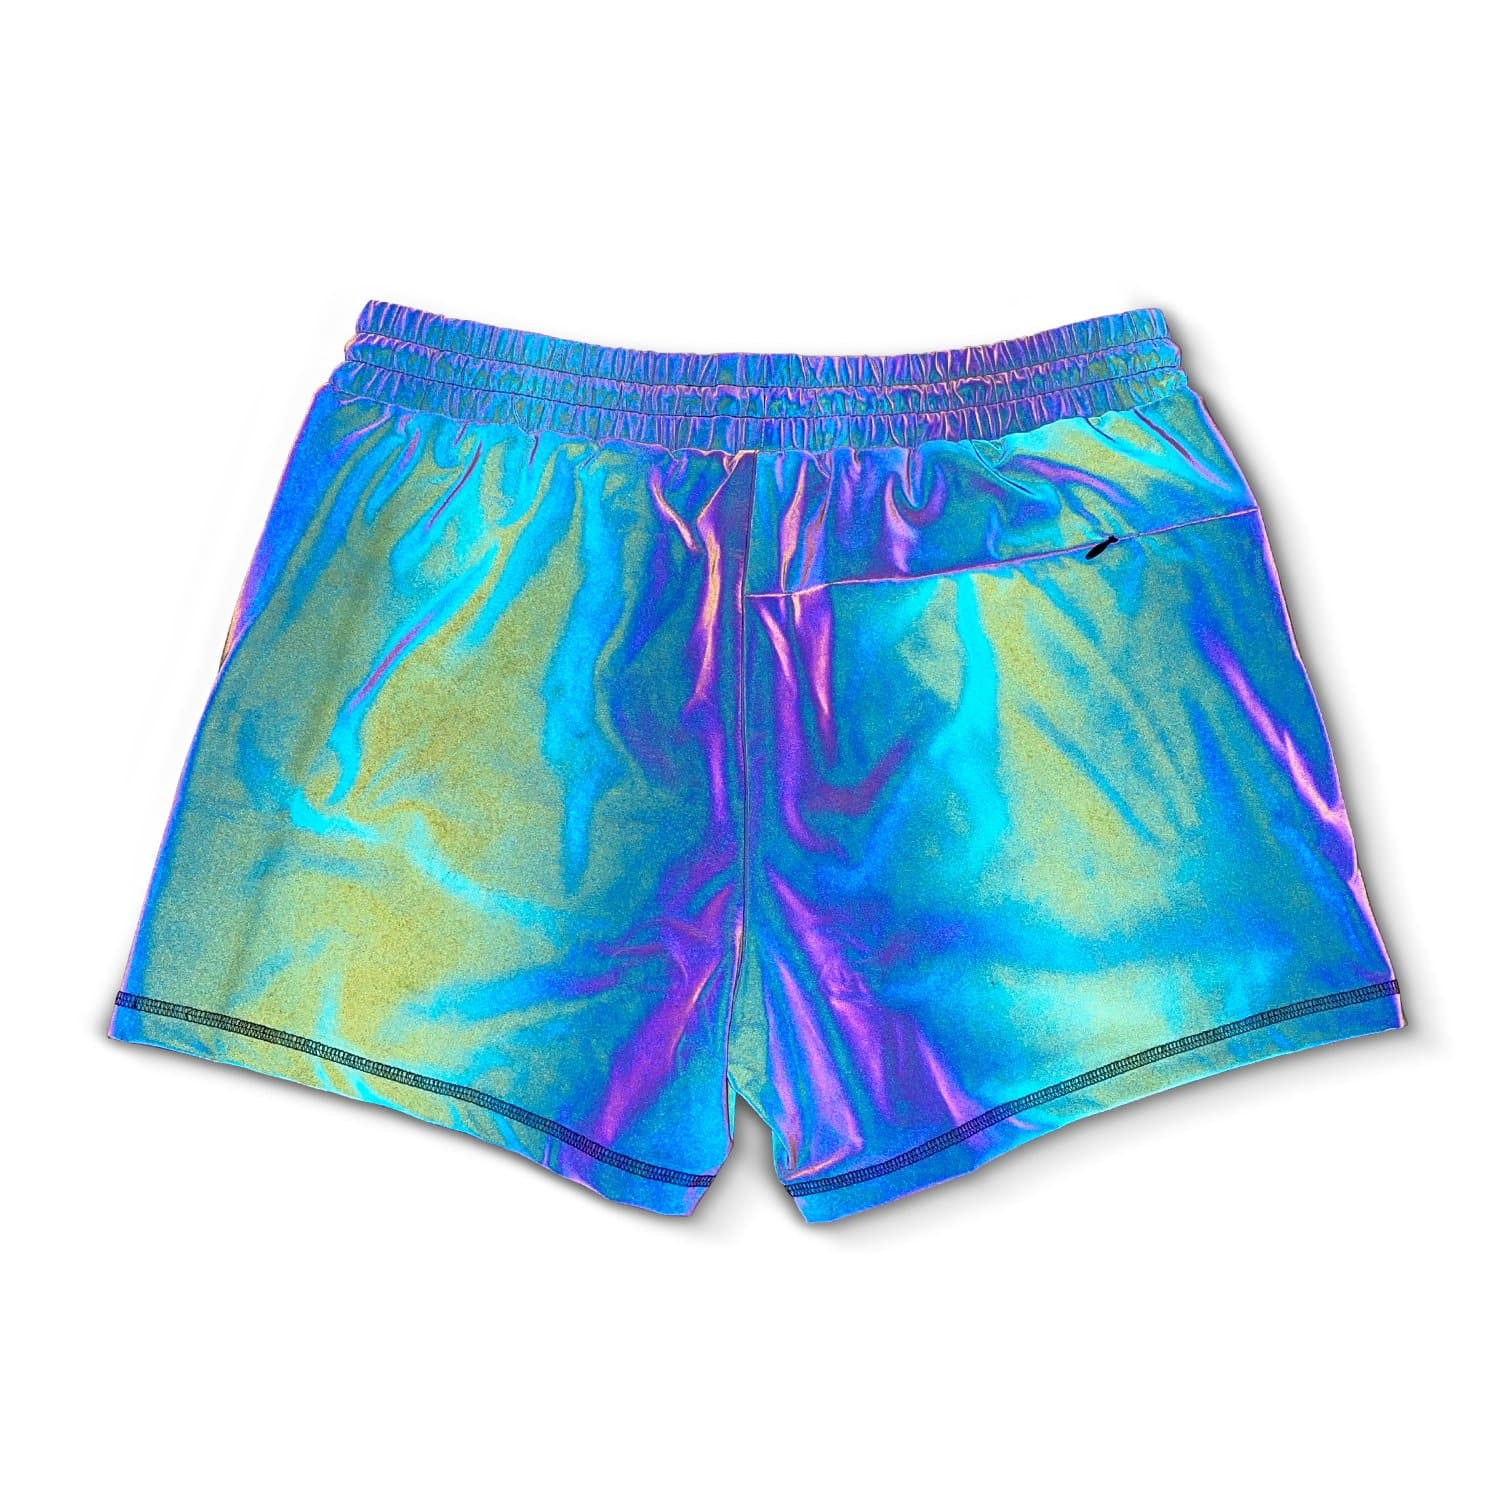 Men's Active Liner Shorts 2.0 - Rainbow REFLECTIVE V2 (4-way stretch)